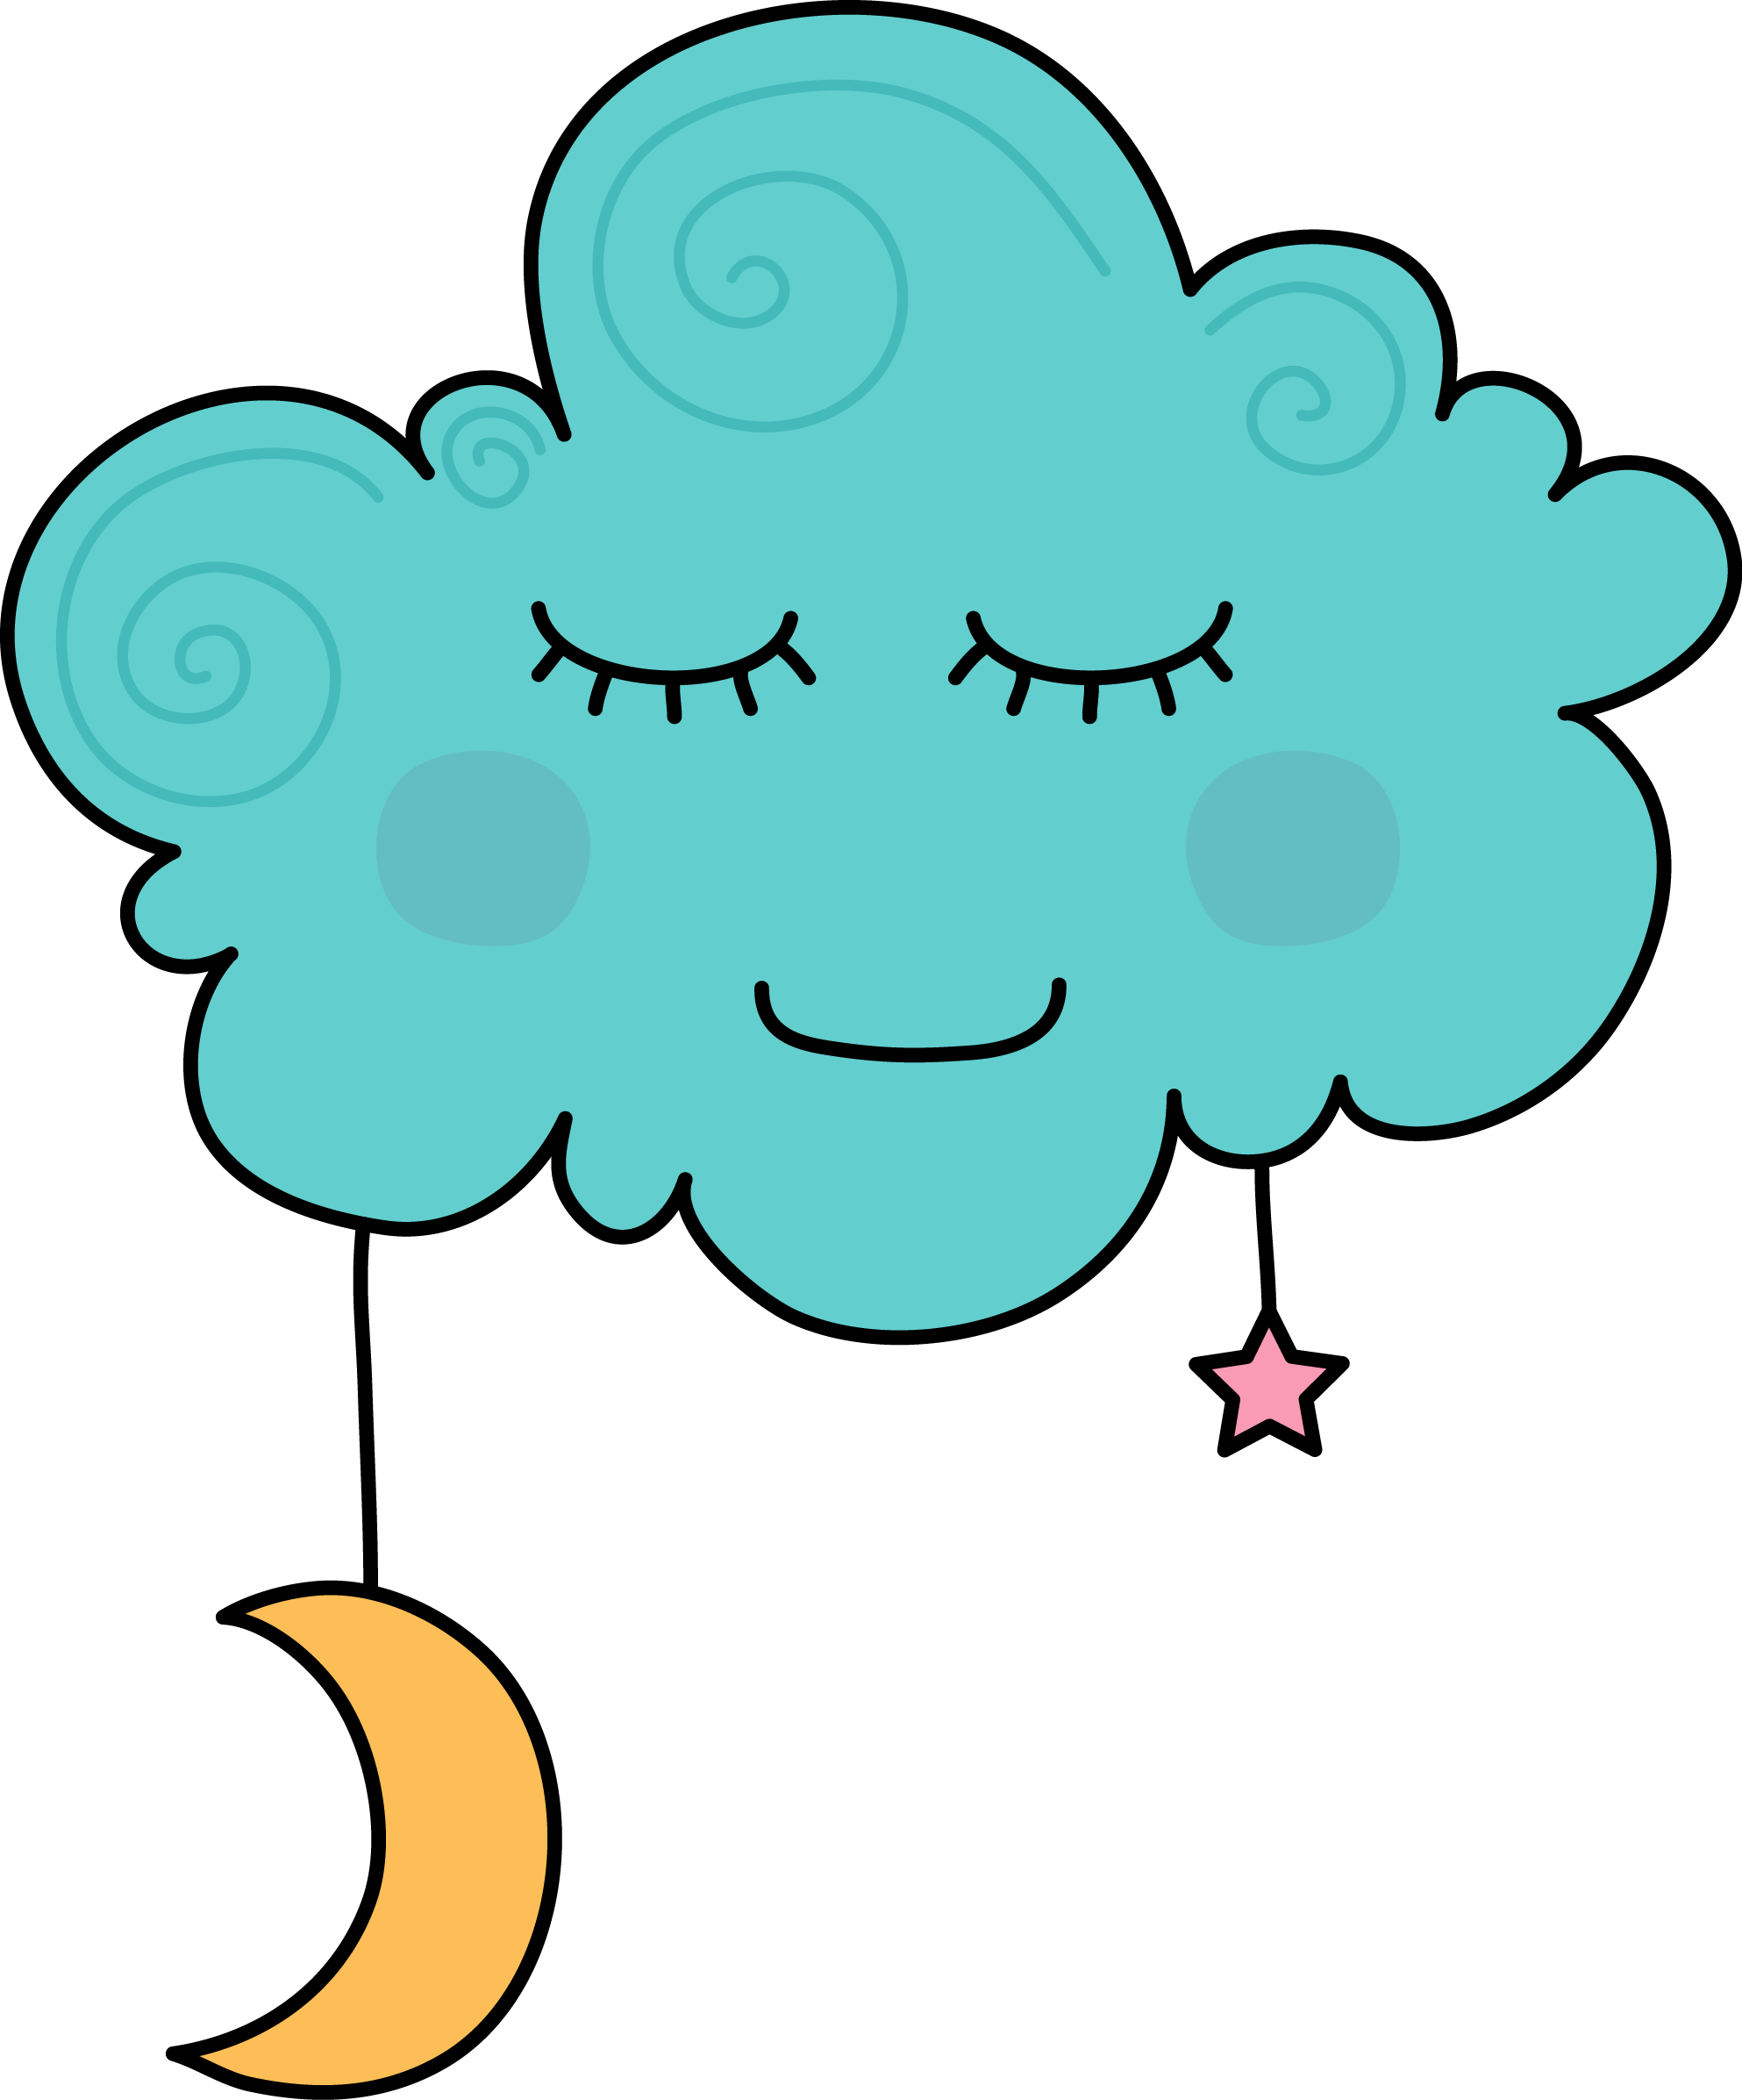 Dreaming cloud cartoon jokingart. Quilt clipart peaceful sleep